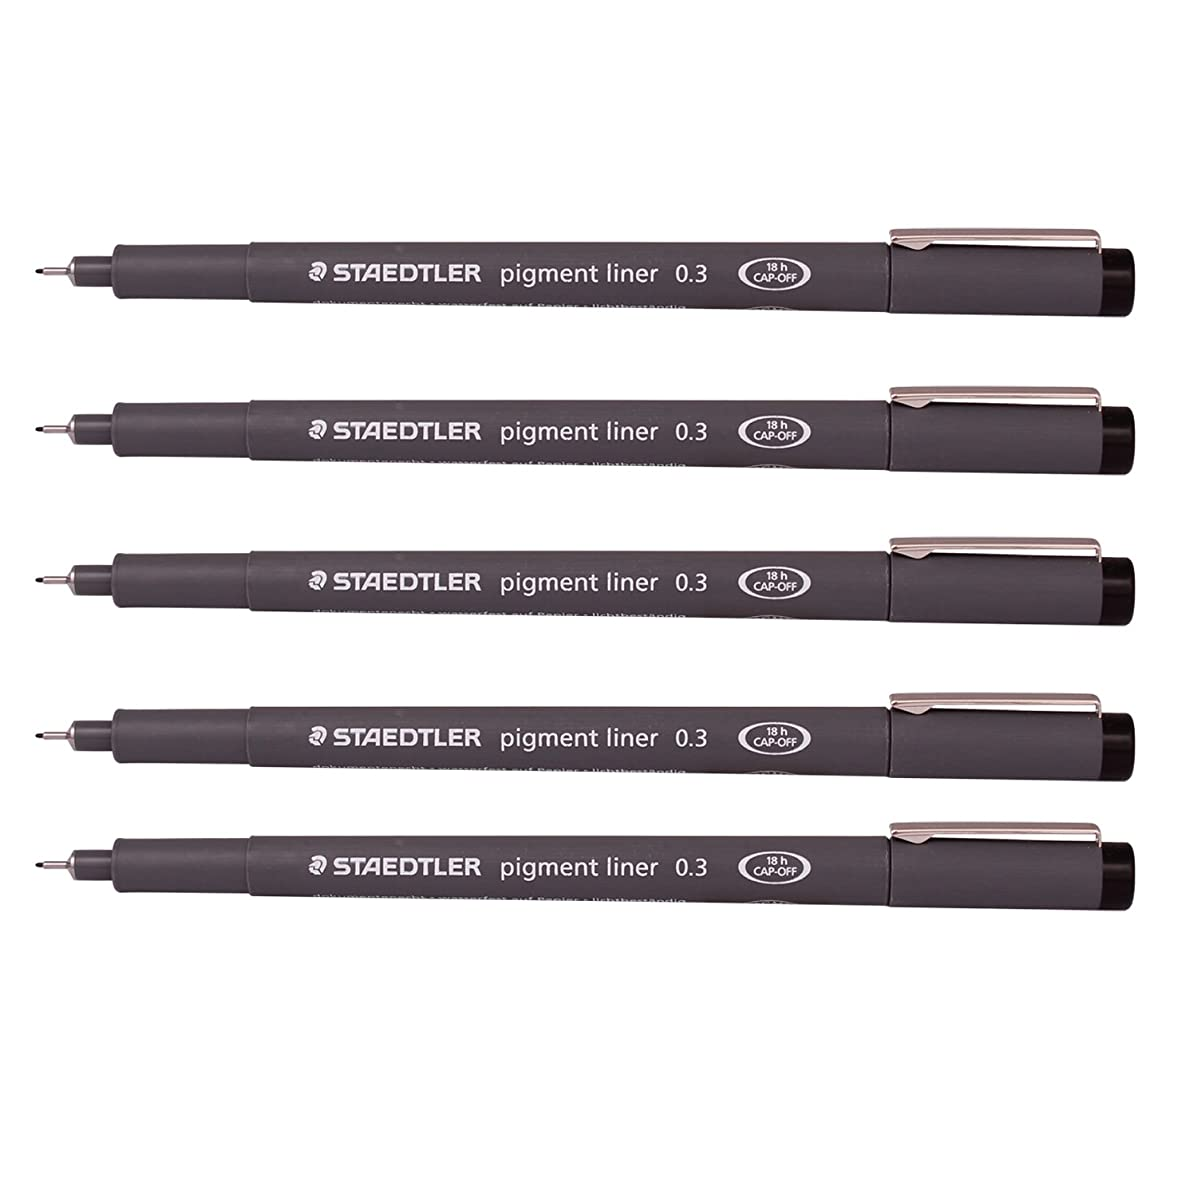 Staedtler 0.3 mm Pigment Liner Fineliner Sketching Drawing Drafting Pens Pack of 5